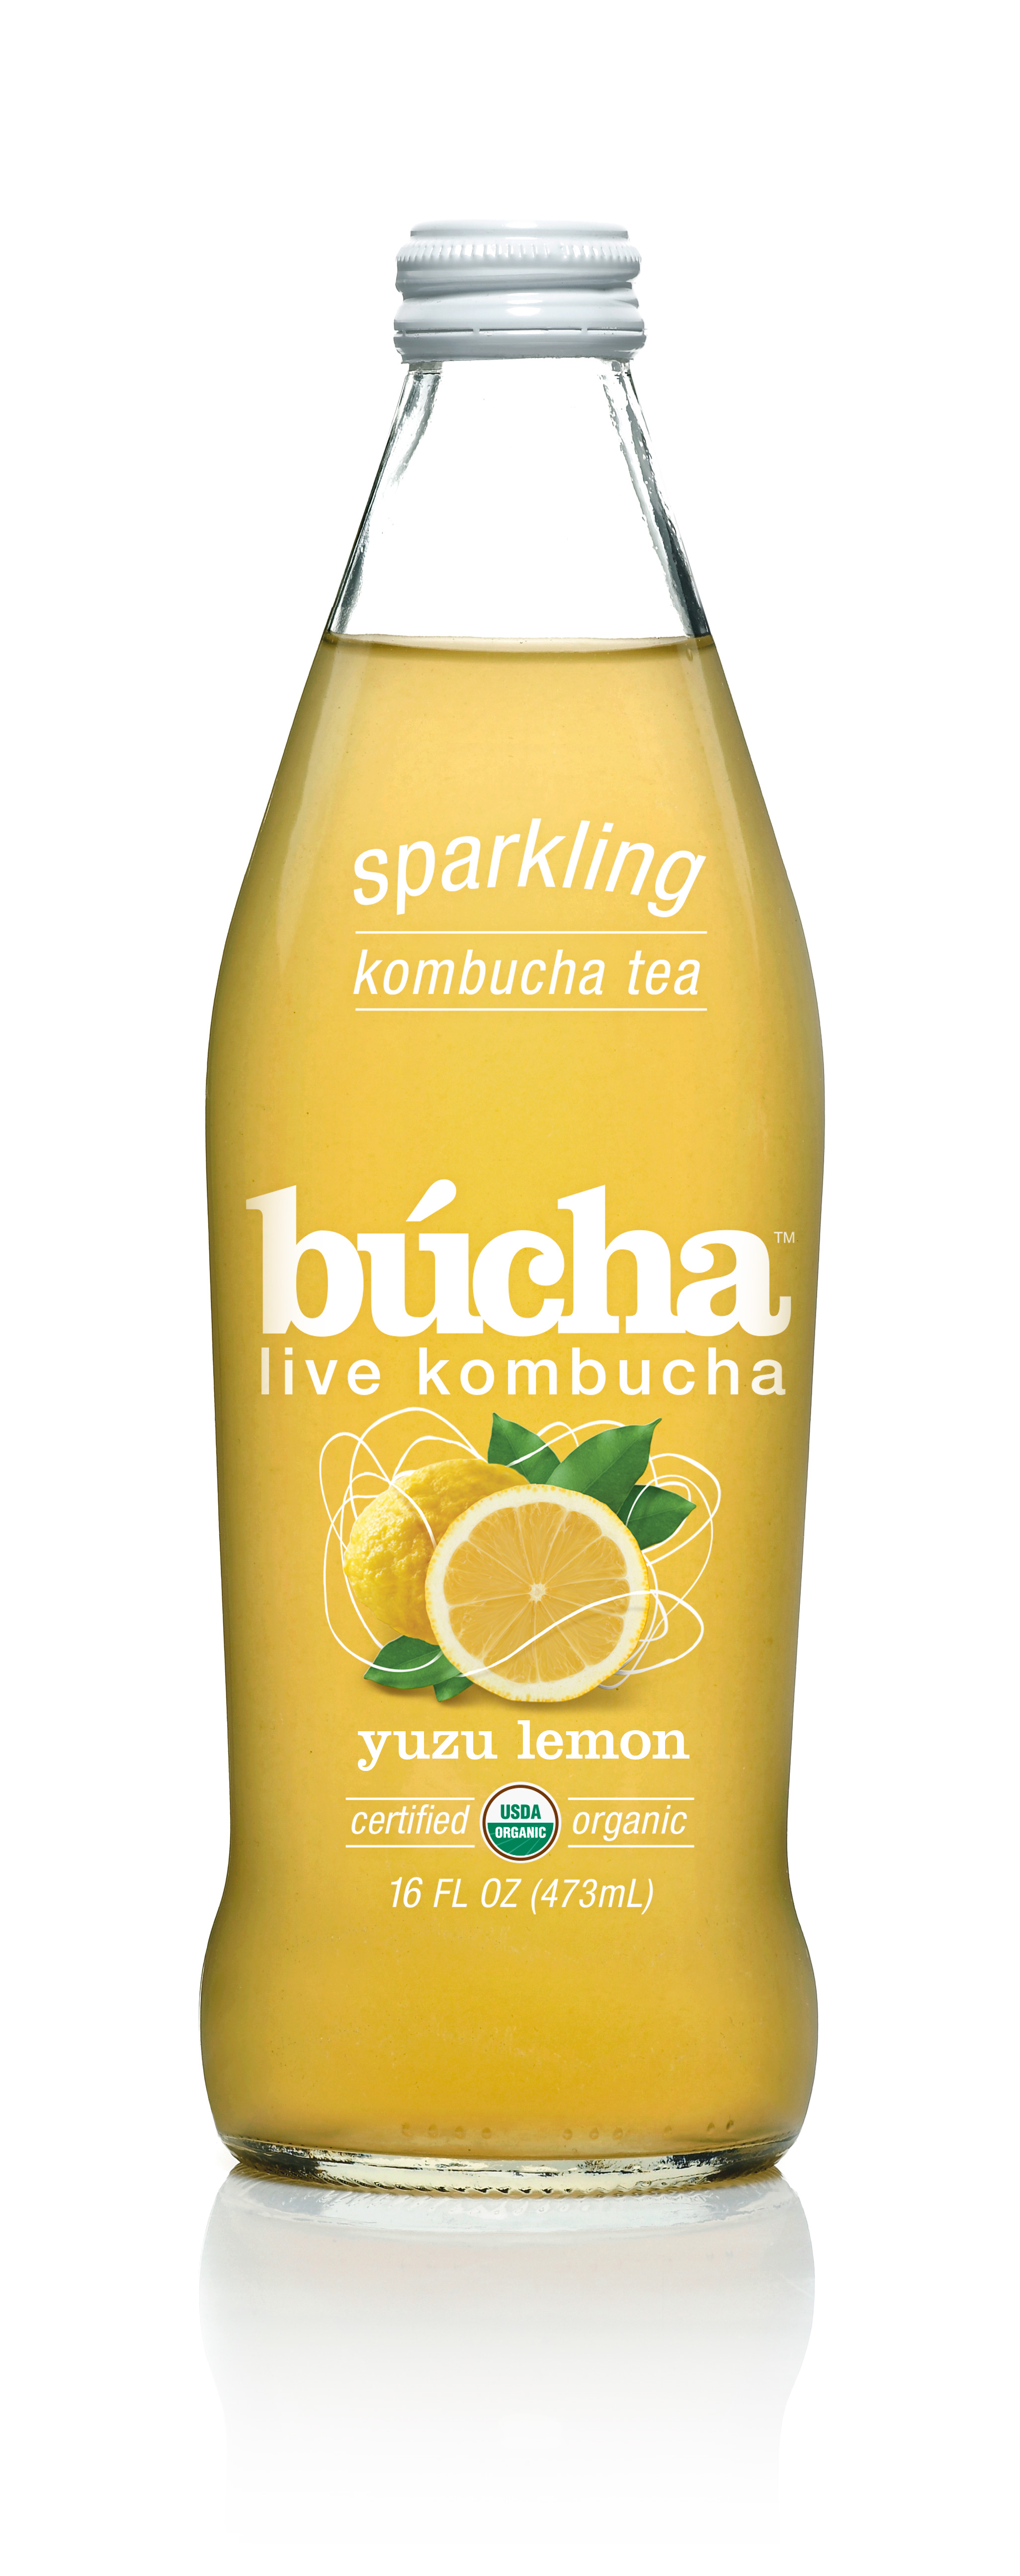 Lemon Law California >> East Meets West With New Búcha Sparkling Kombucha Tea; First Kombucha Made With Exotic 'Yuzu ...